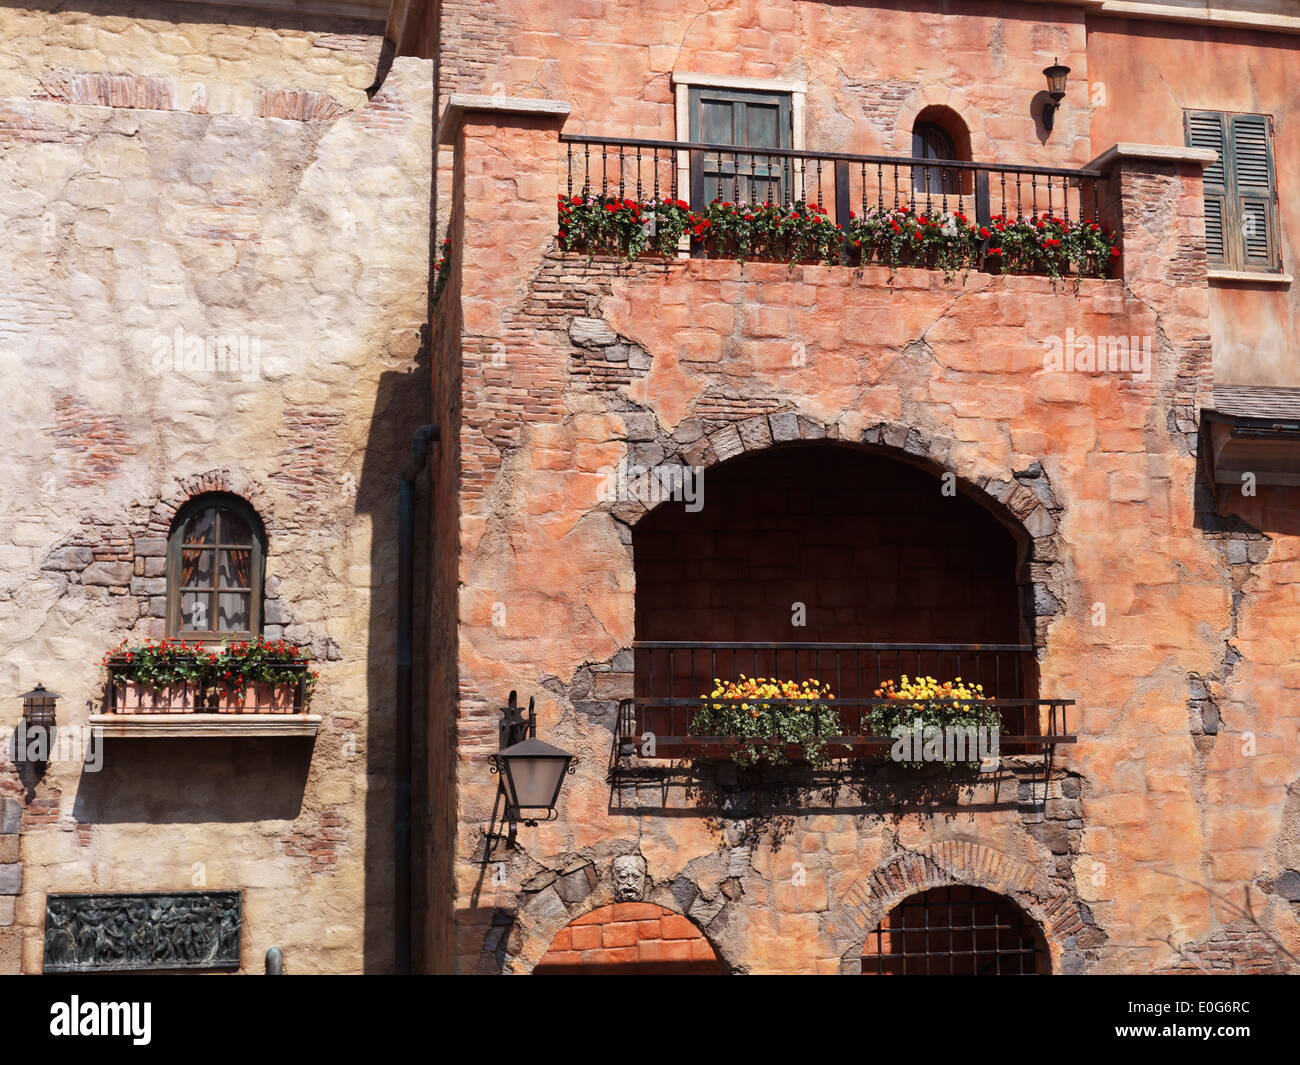 Antique Italian Architecture Details Old House Balconies And Windows With Flowers